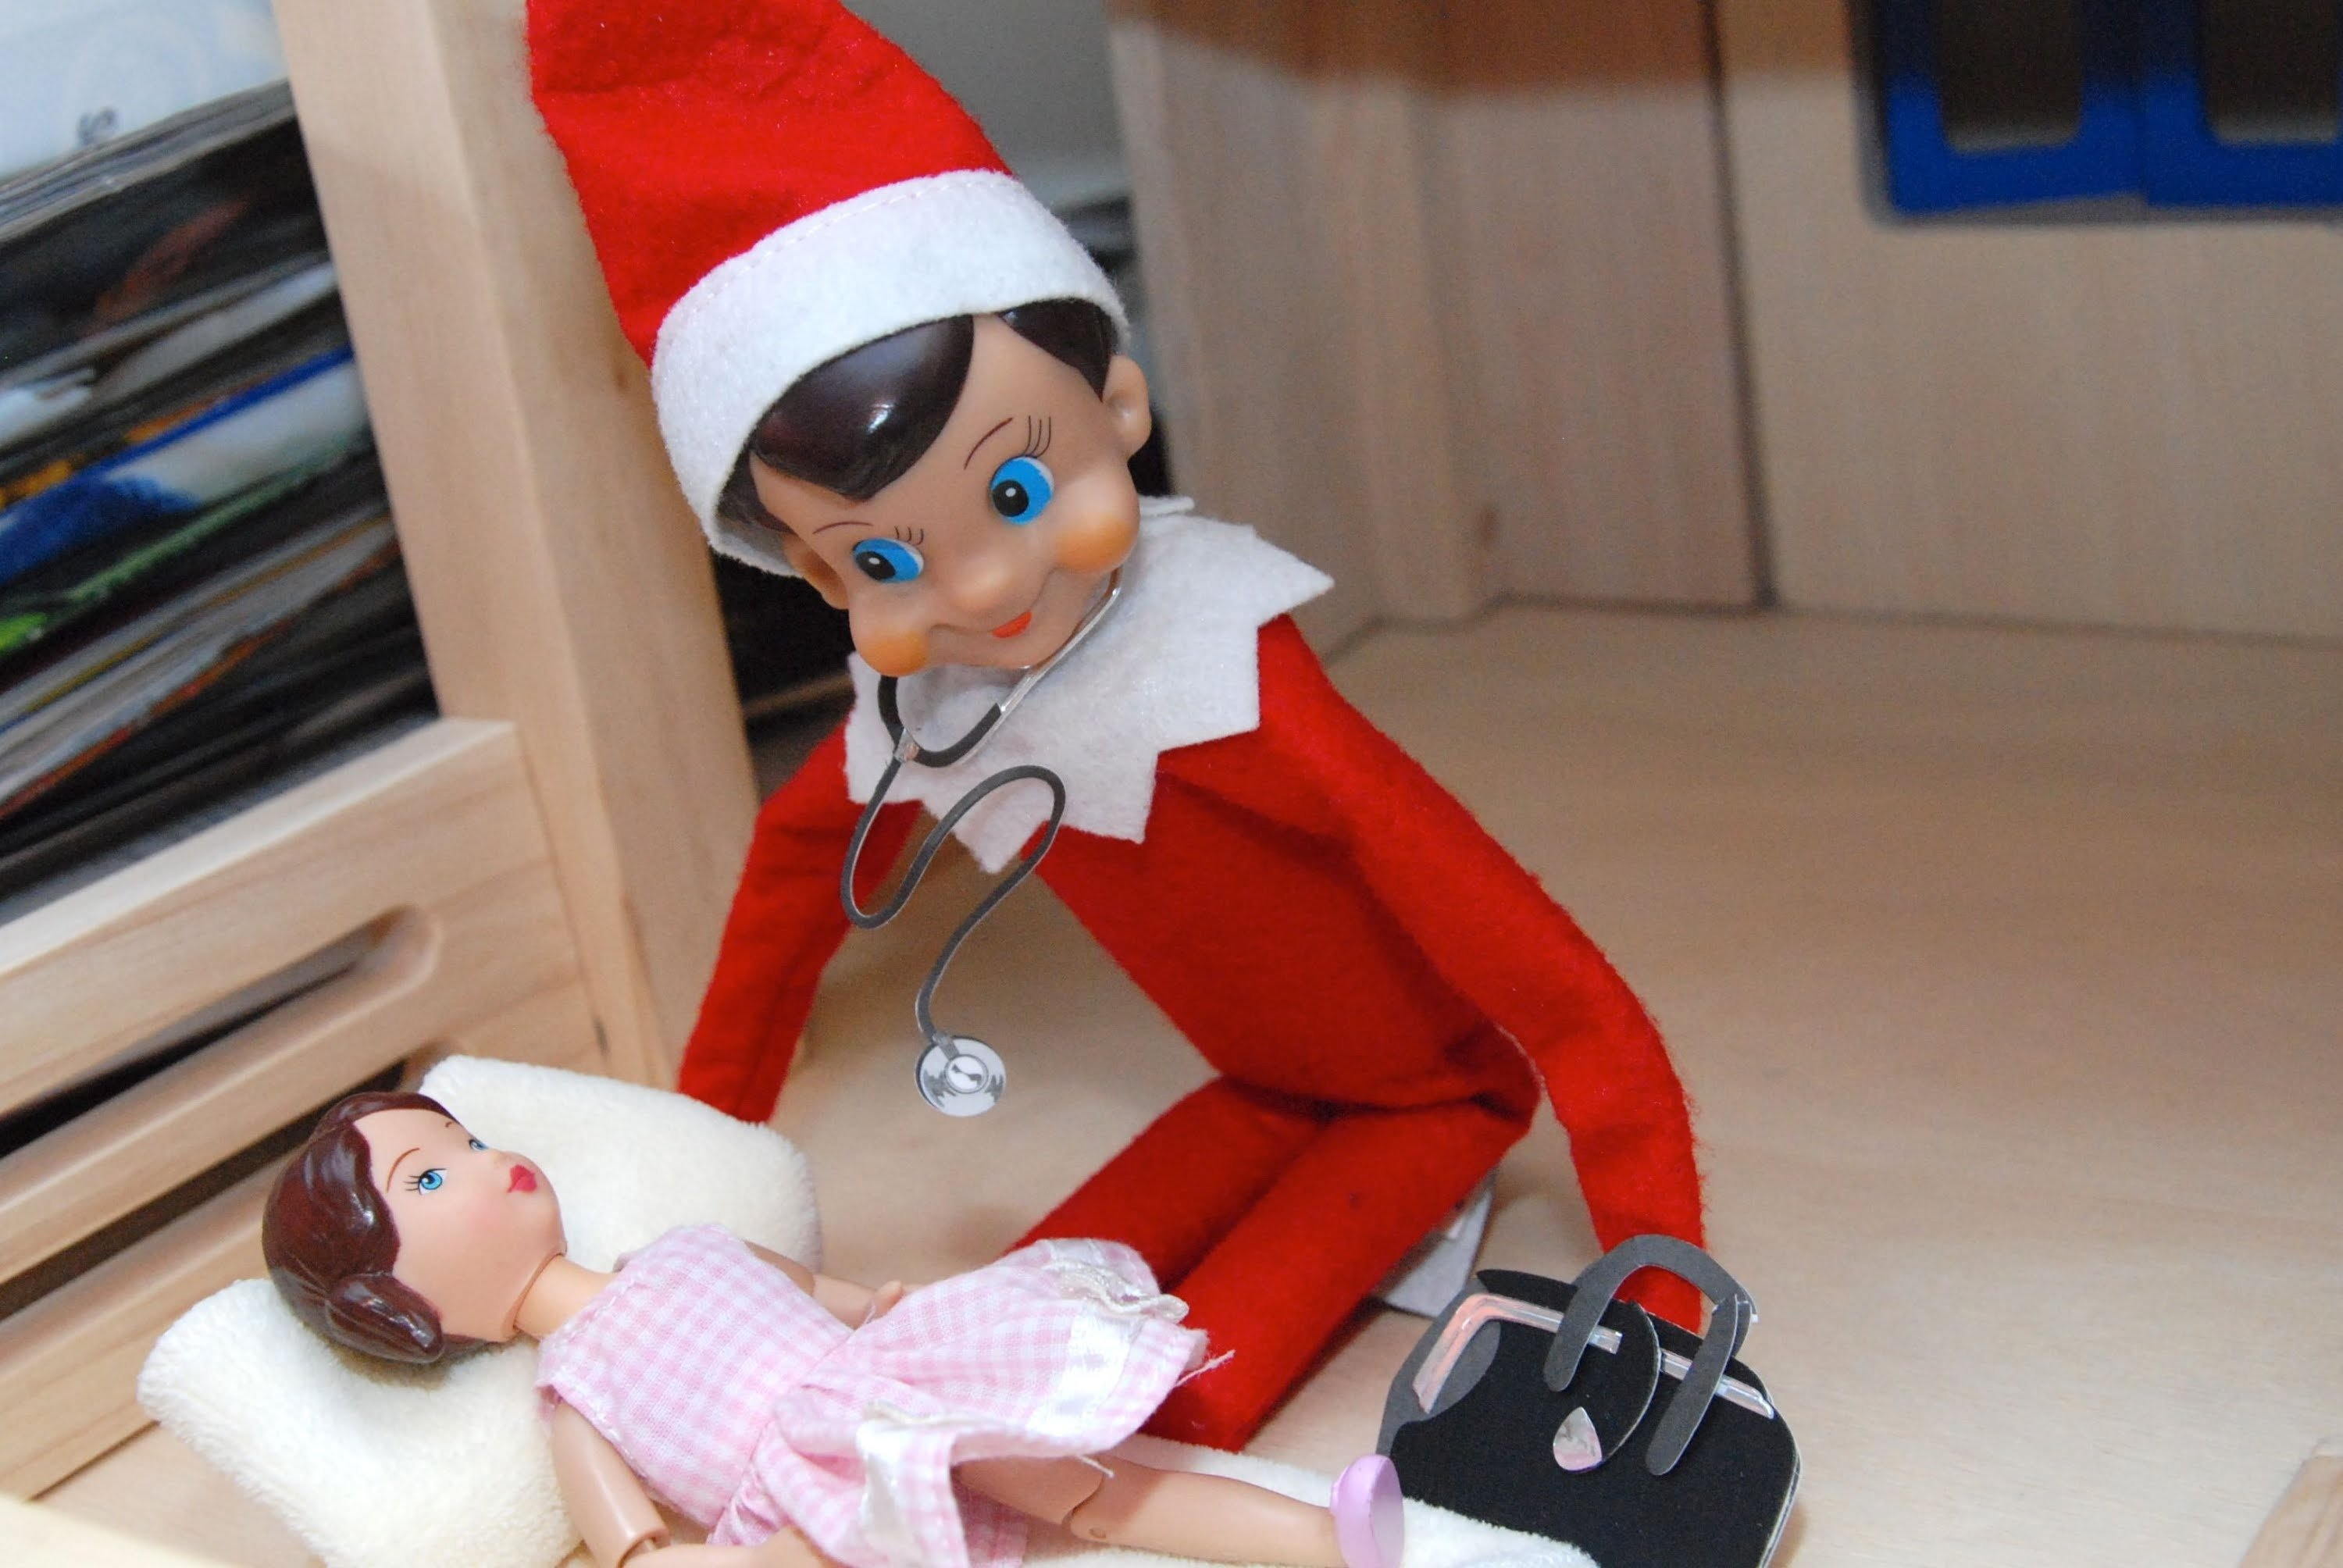 10 Nice Naughty Elf On The Shelf Ideas naughty elf on the shelf version 2 naughty elf on a shelf 2 2021